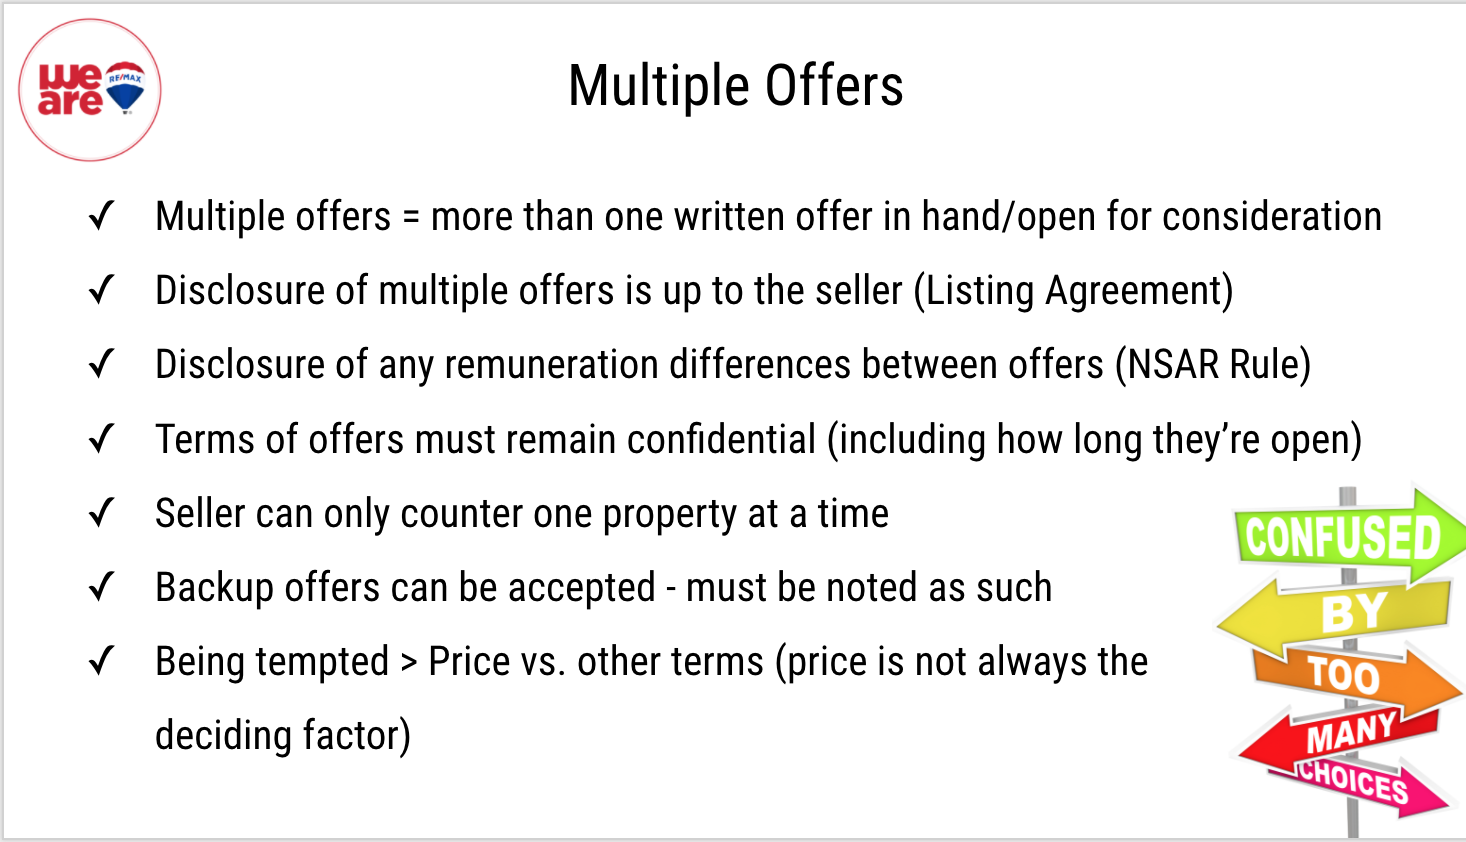 What You As A Home Seller and or Home Buyer Need To Know About Competing Offers